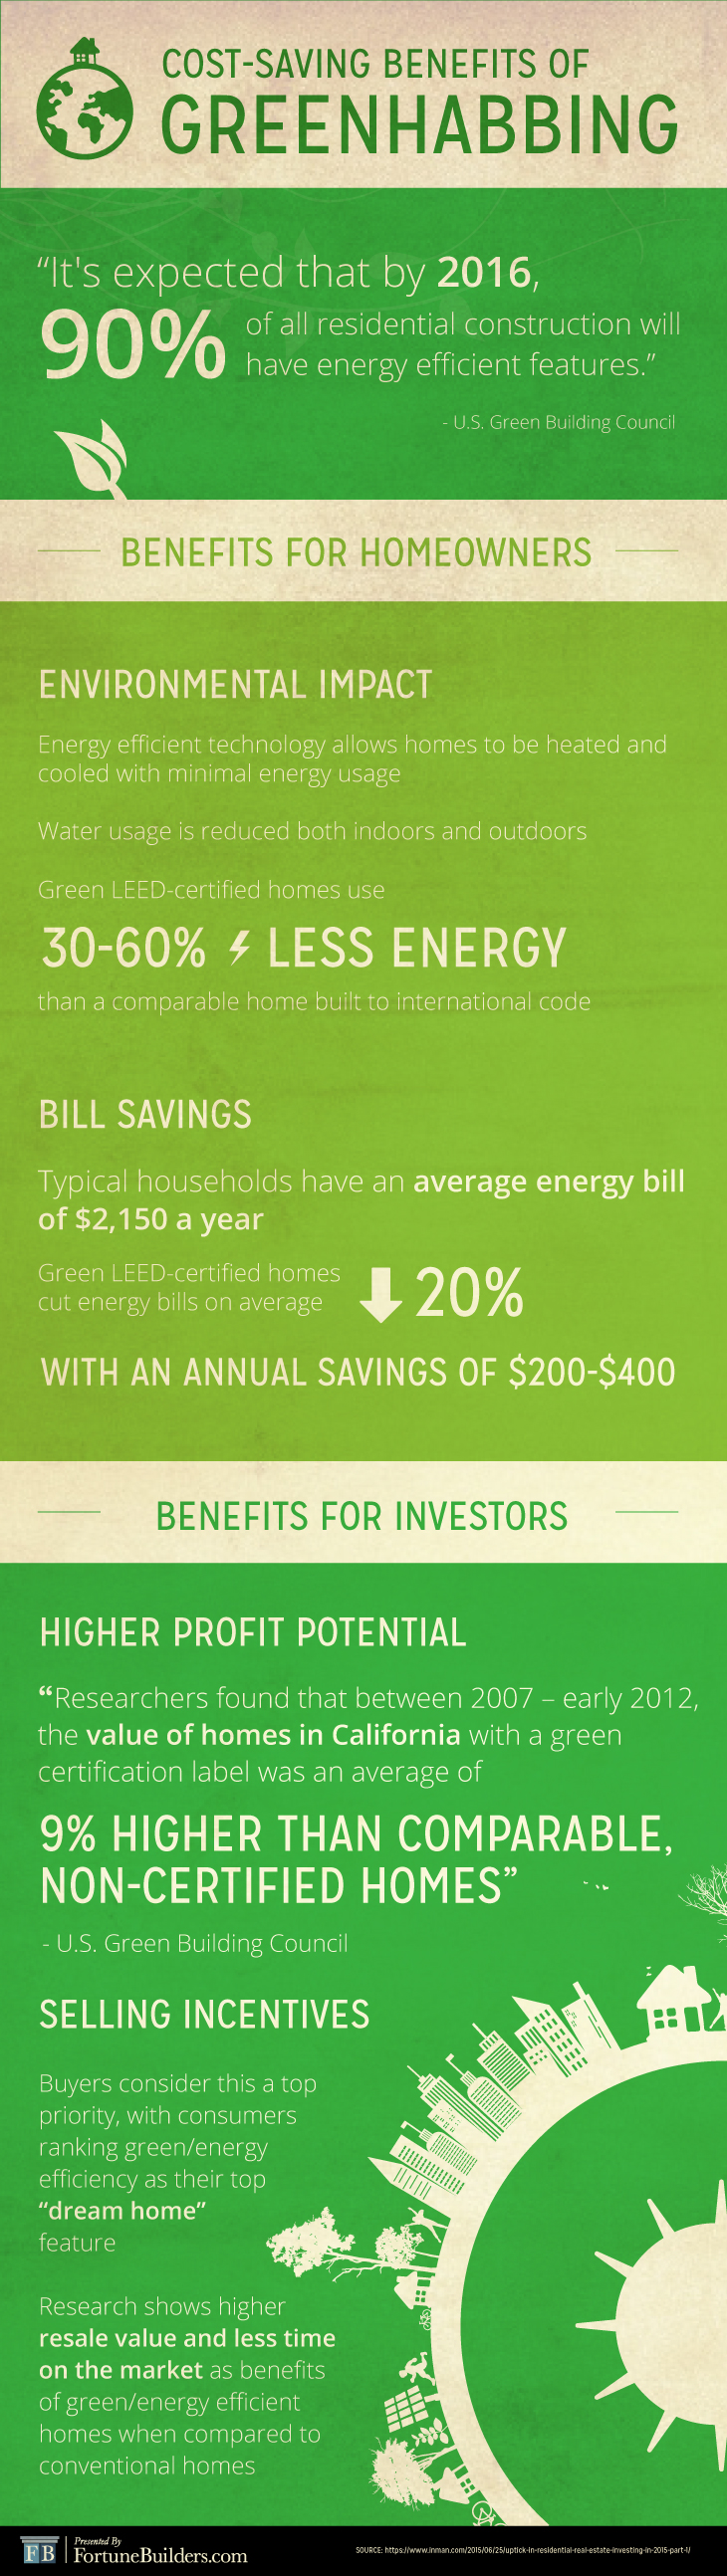 Greenhabbing infographic